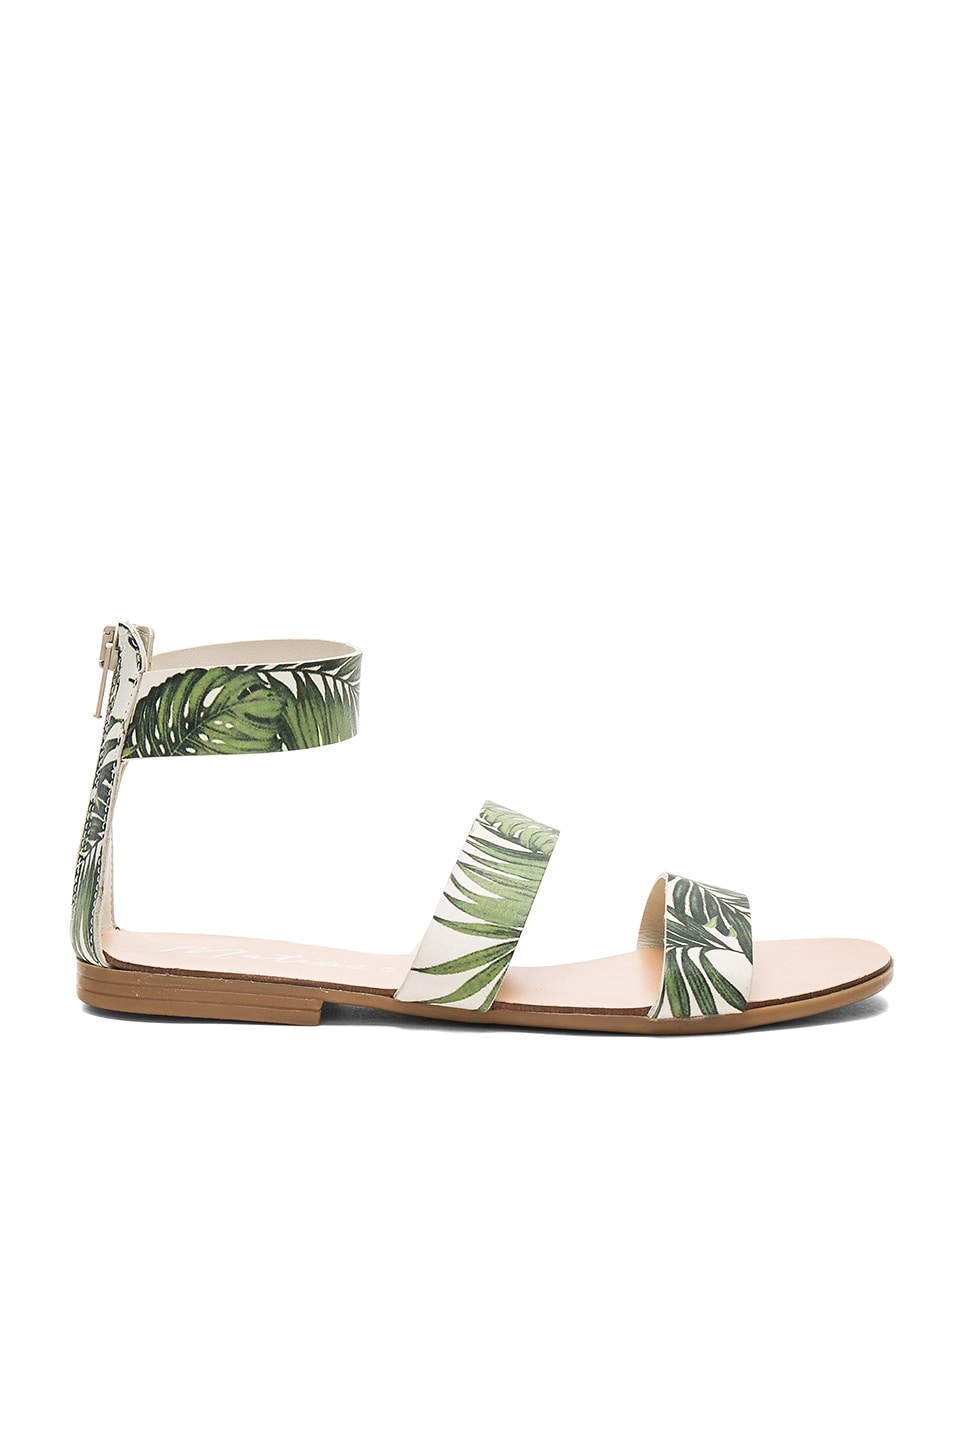 Matisse Nikita Sandal in Palm